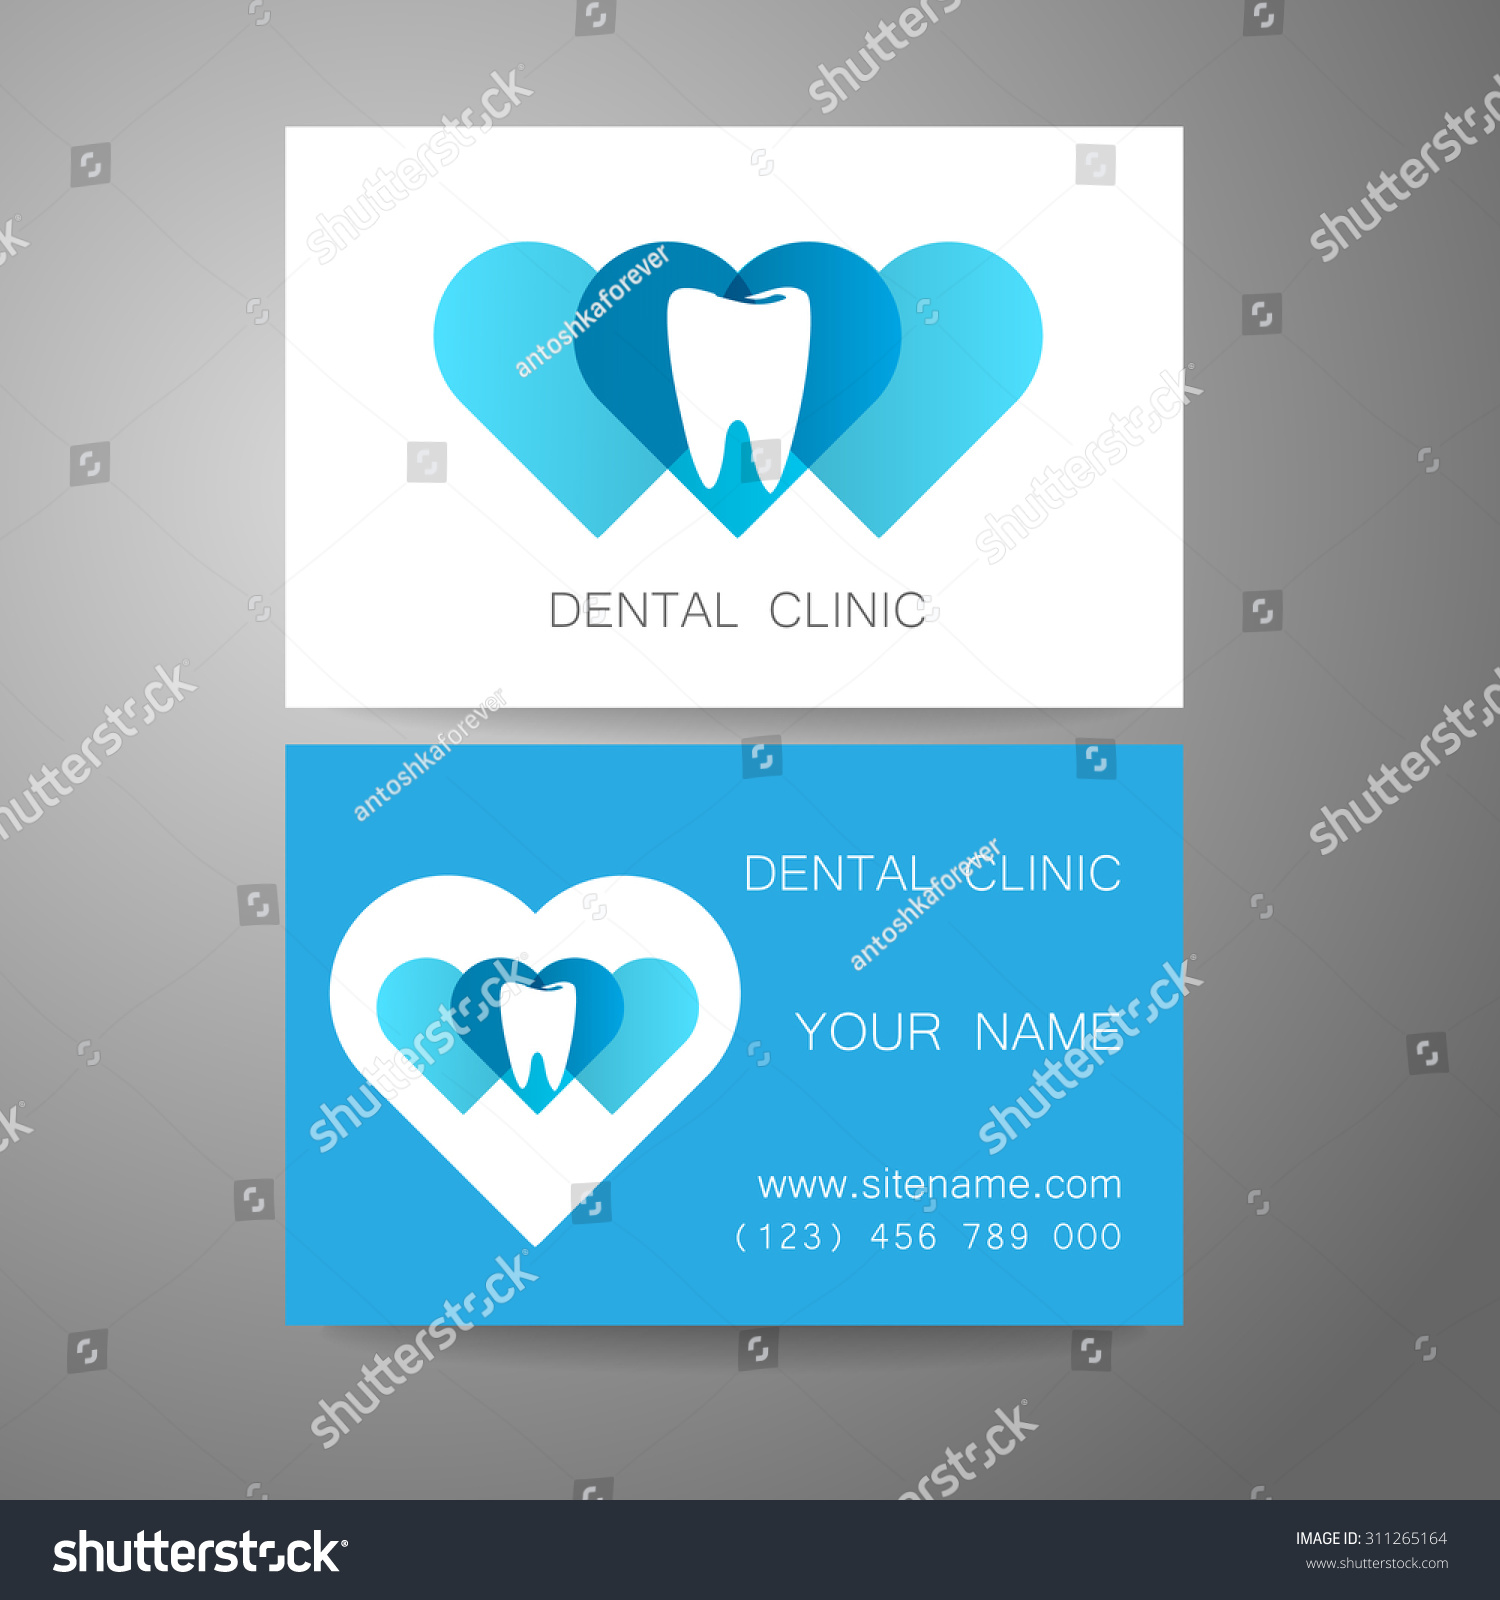 dental clinic template design logo corporate stock vector